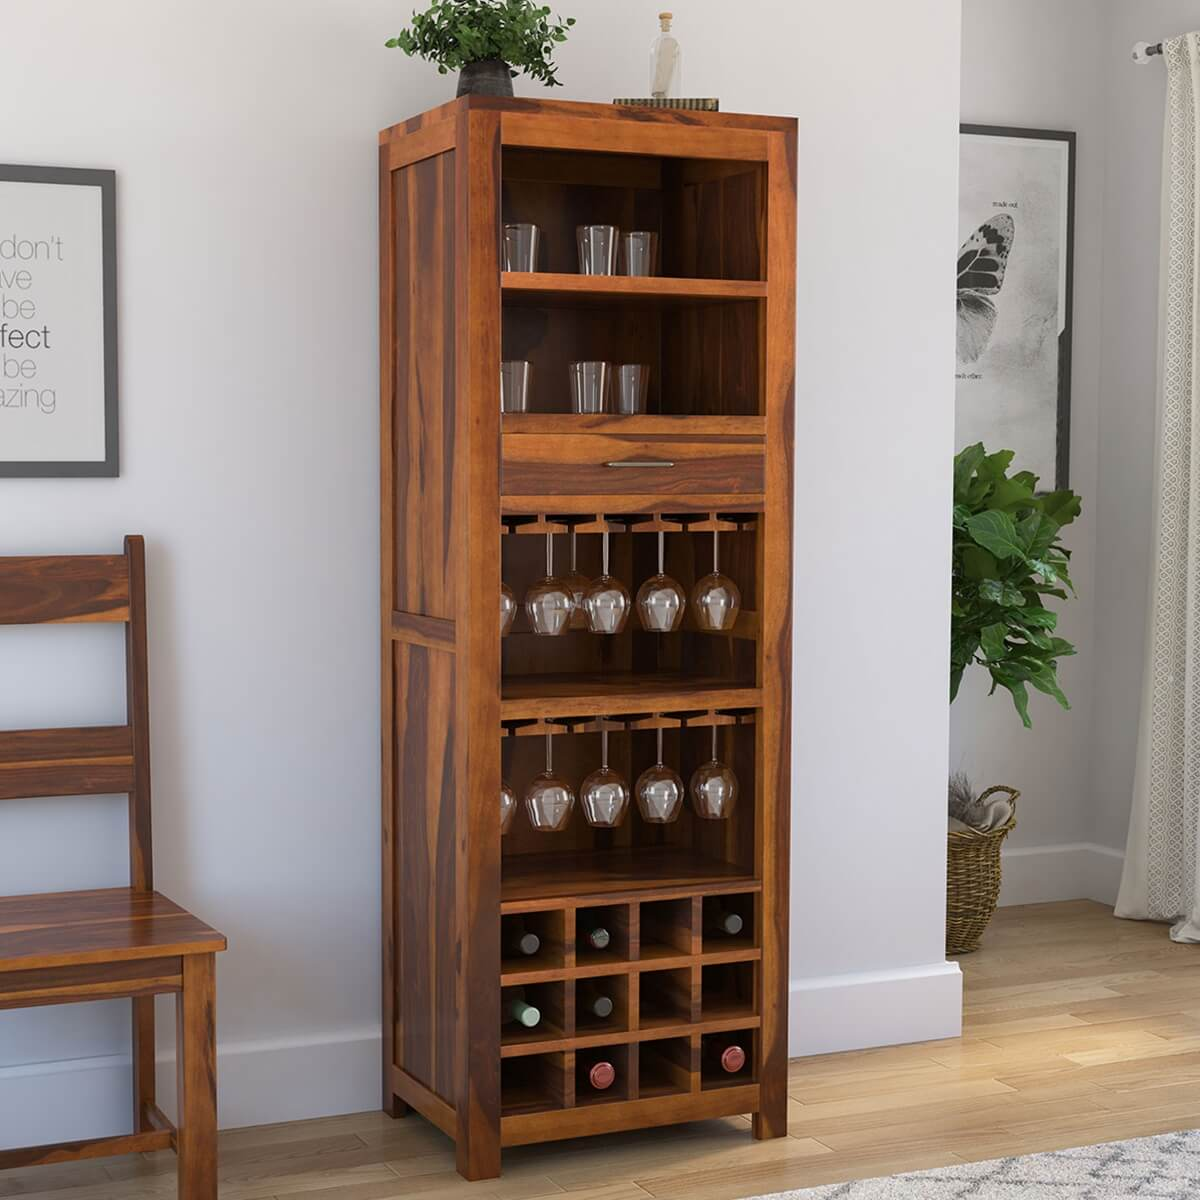 Modern Home Bar Cabinet: California Contemporary Handcrafted Solid Wood Rustic Tall